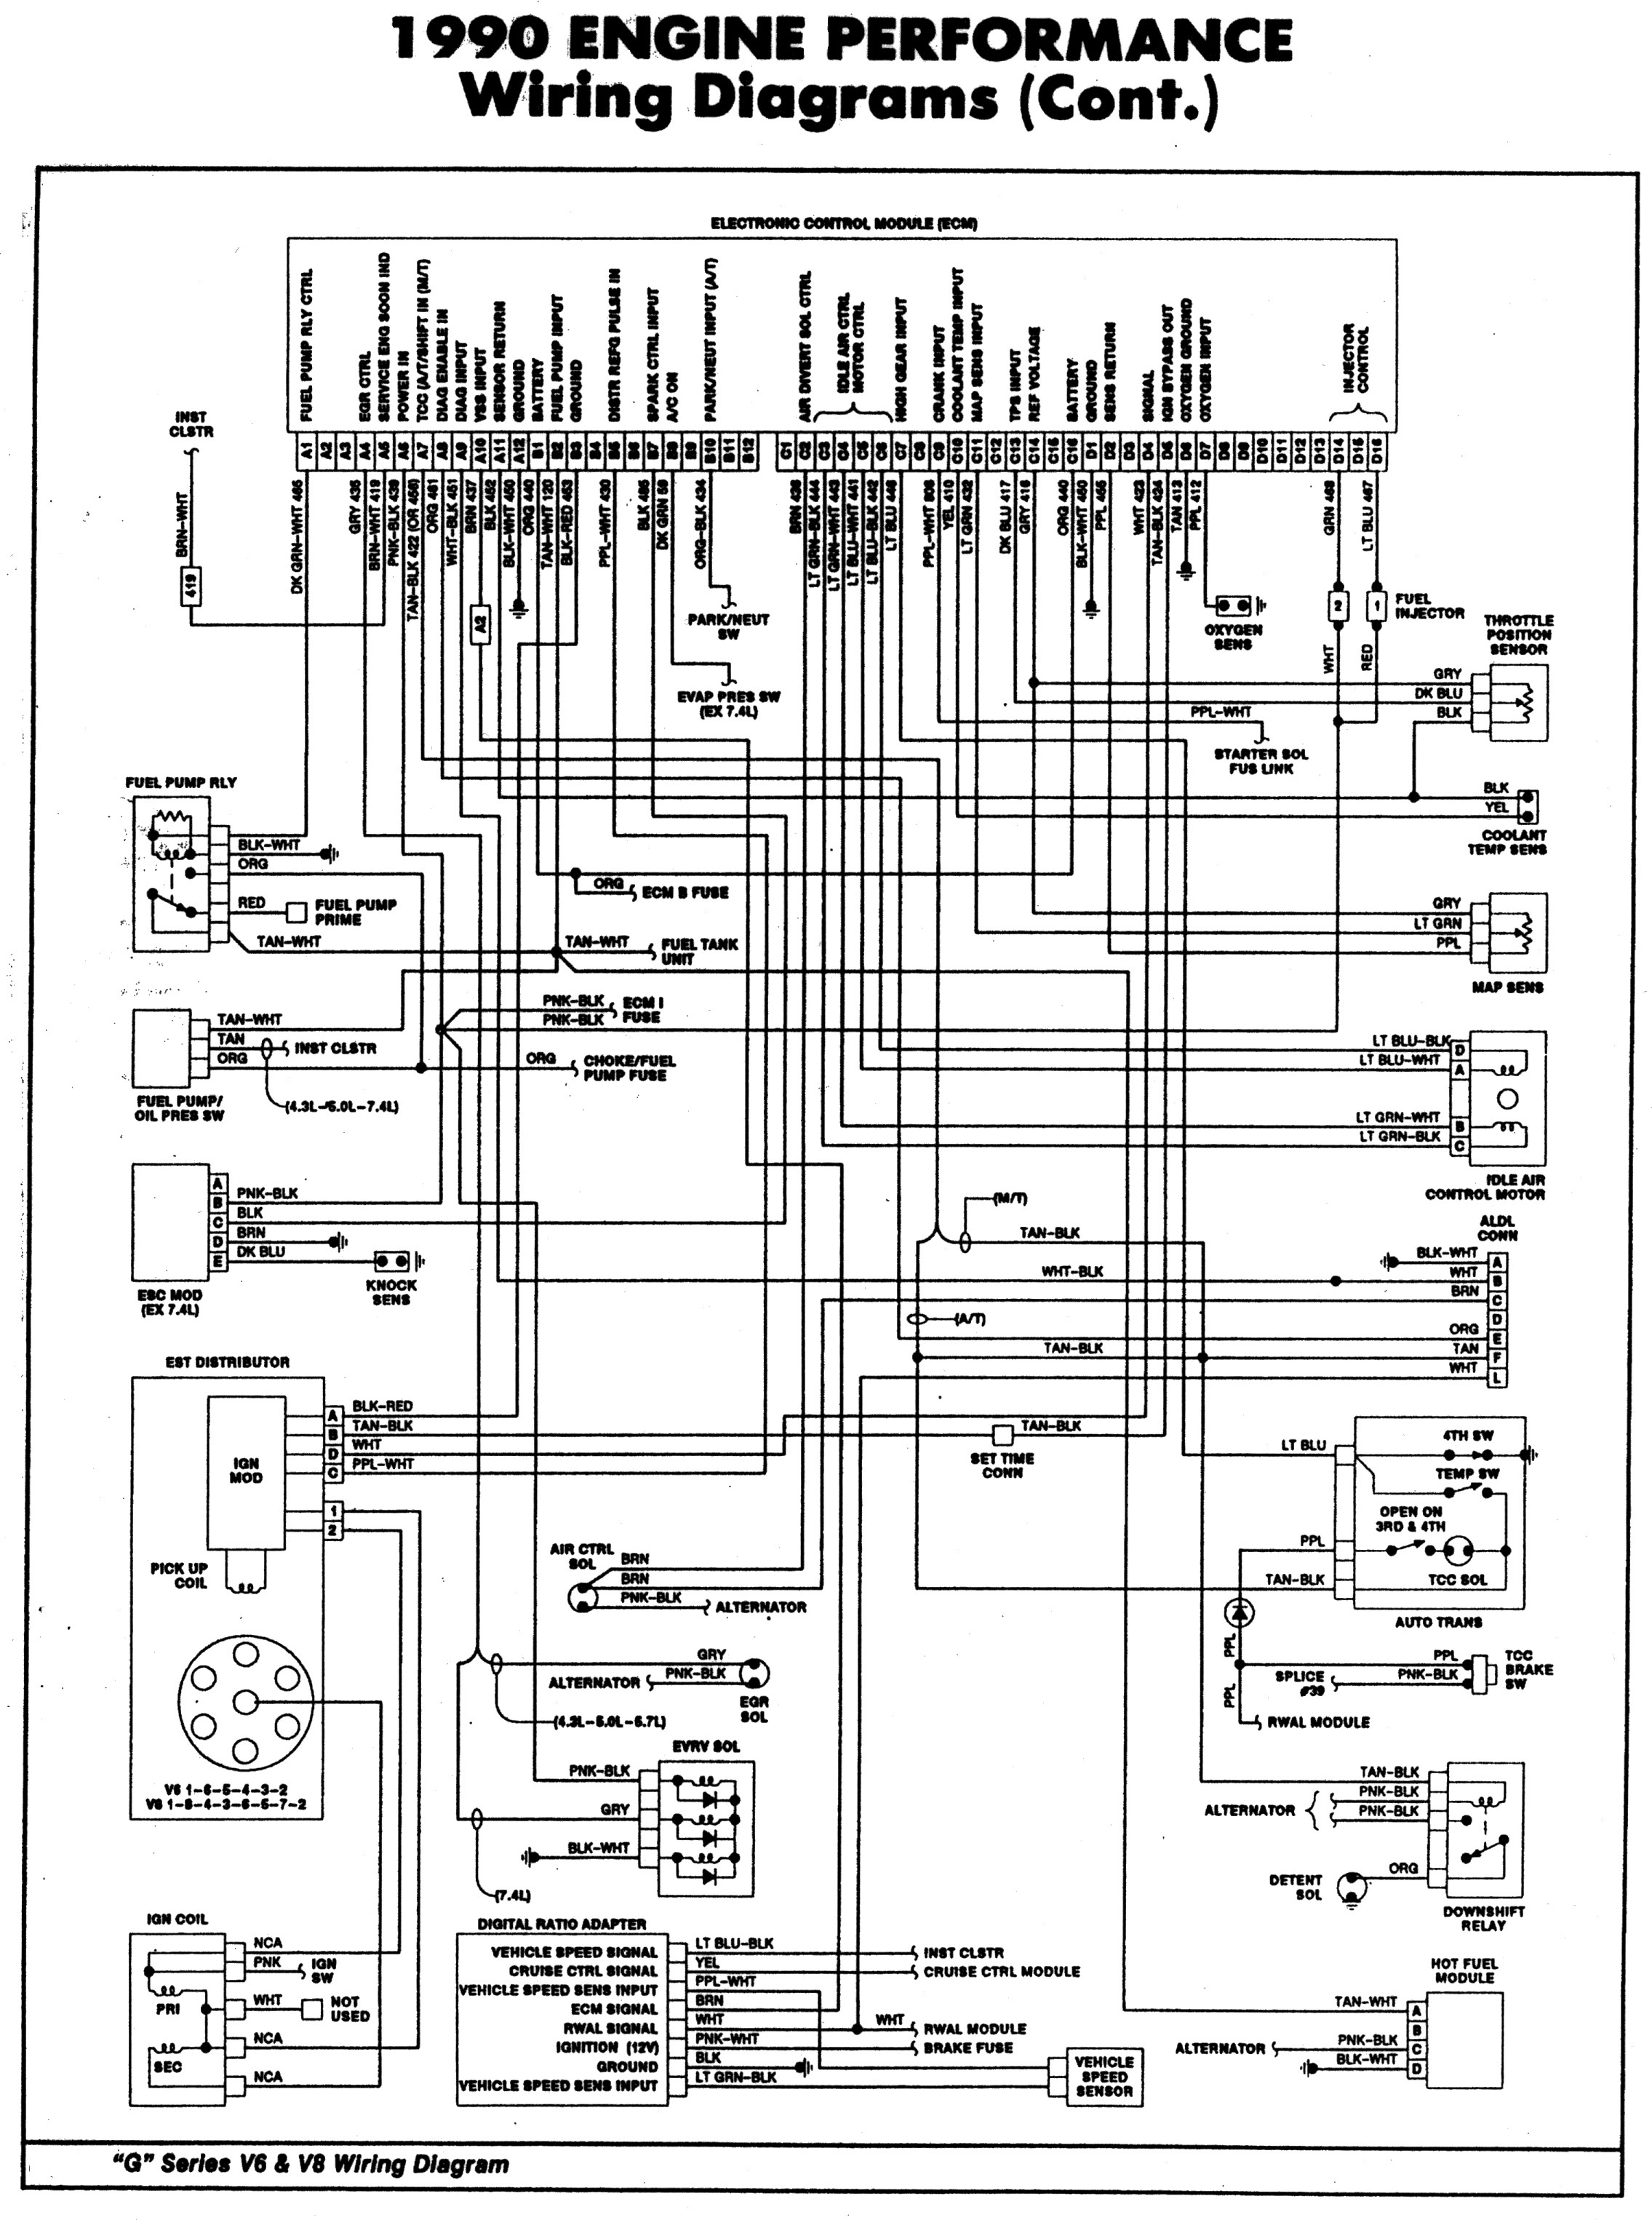 c1500 4 3l v6 wiring diagram wiring diagram part 1992 chevy c1500 4 3 wiring diagram [ 2271 x 3051 Pixel ]